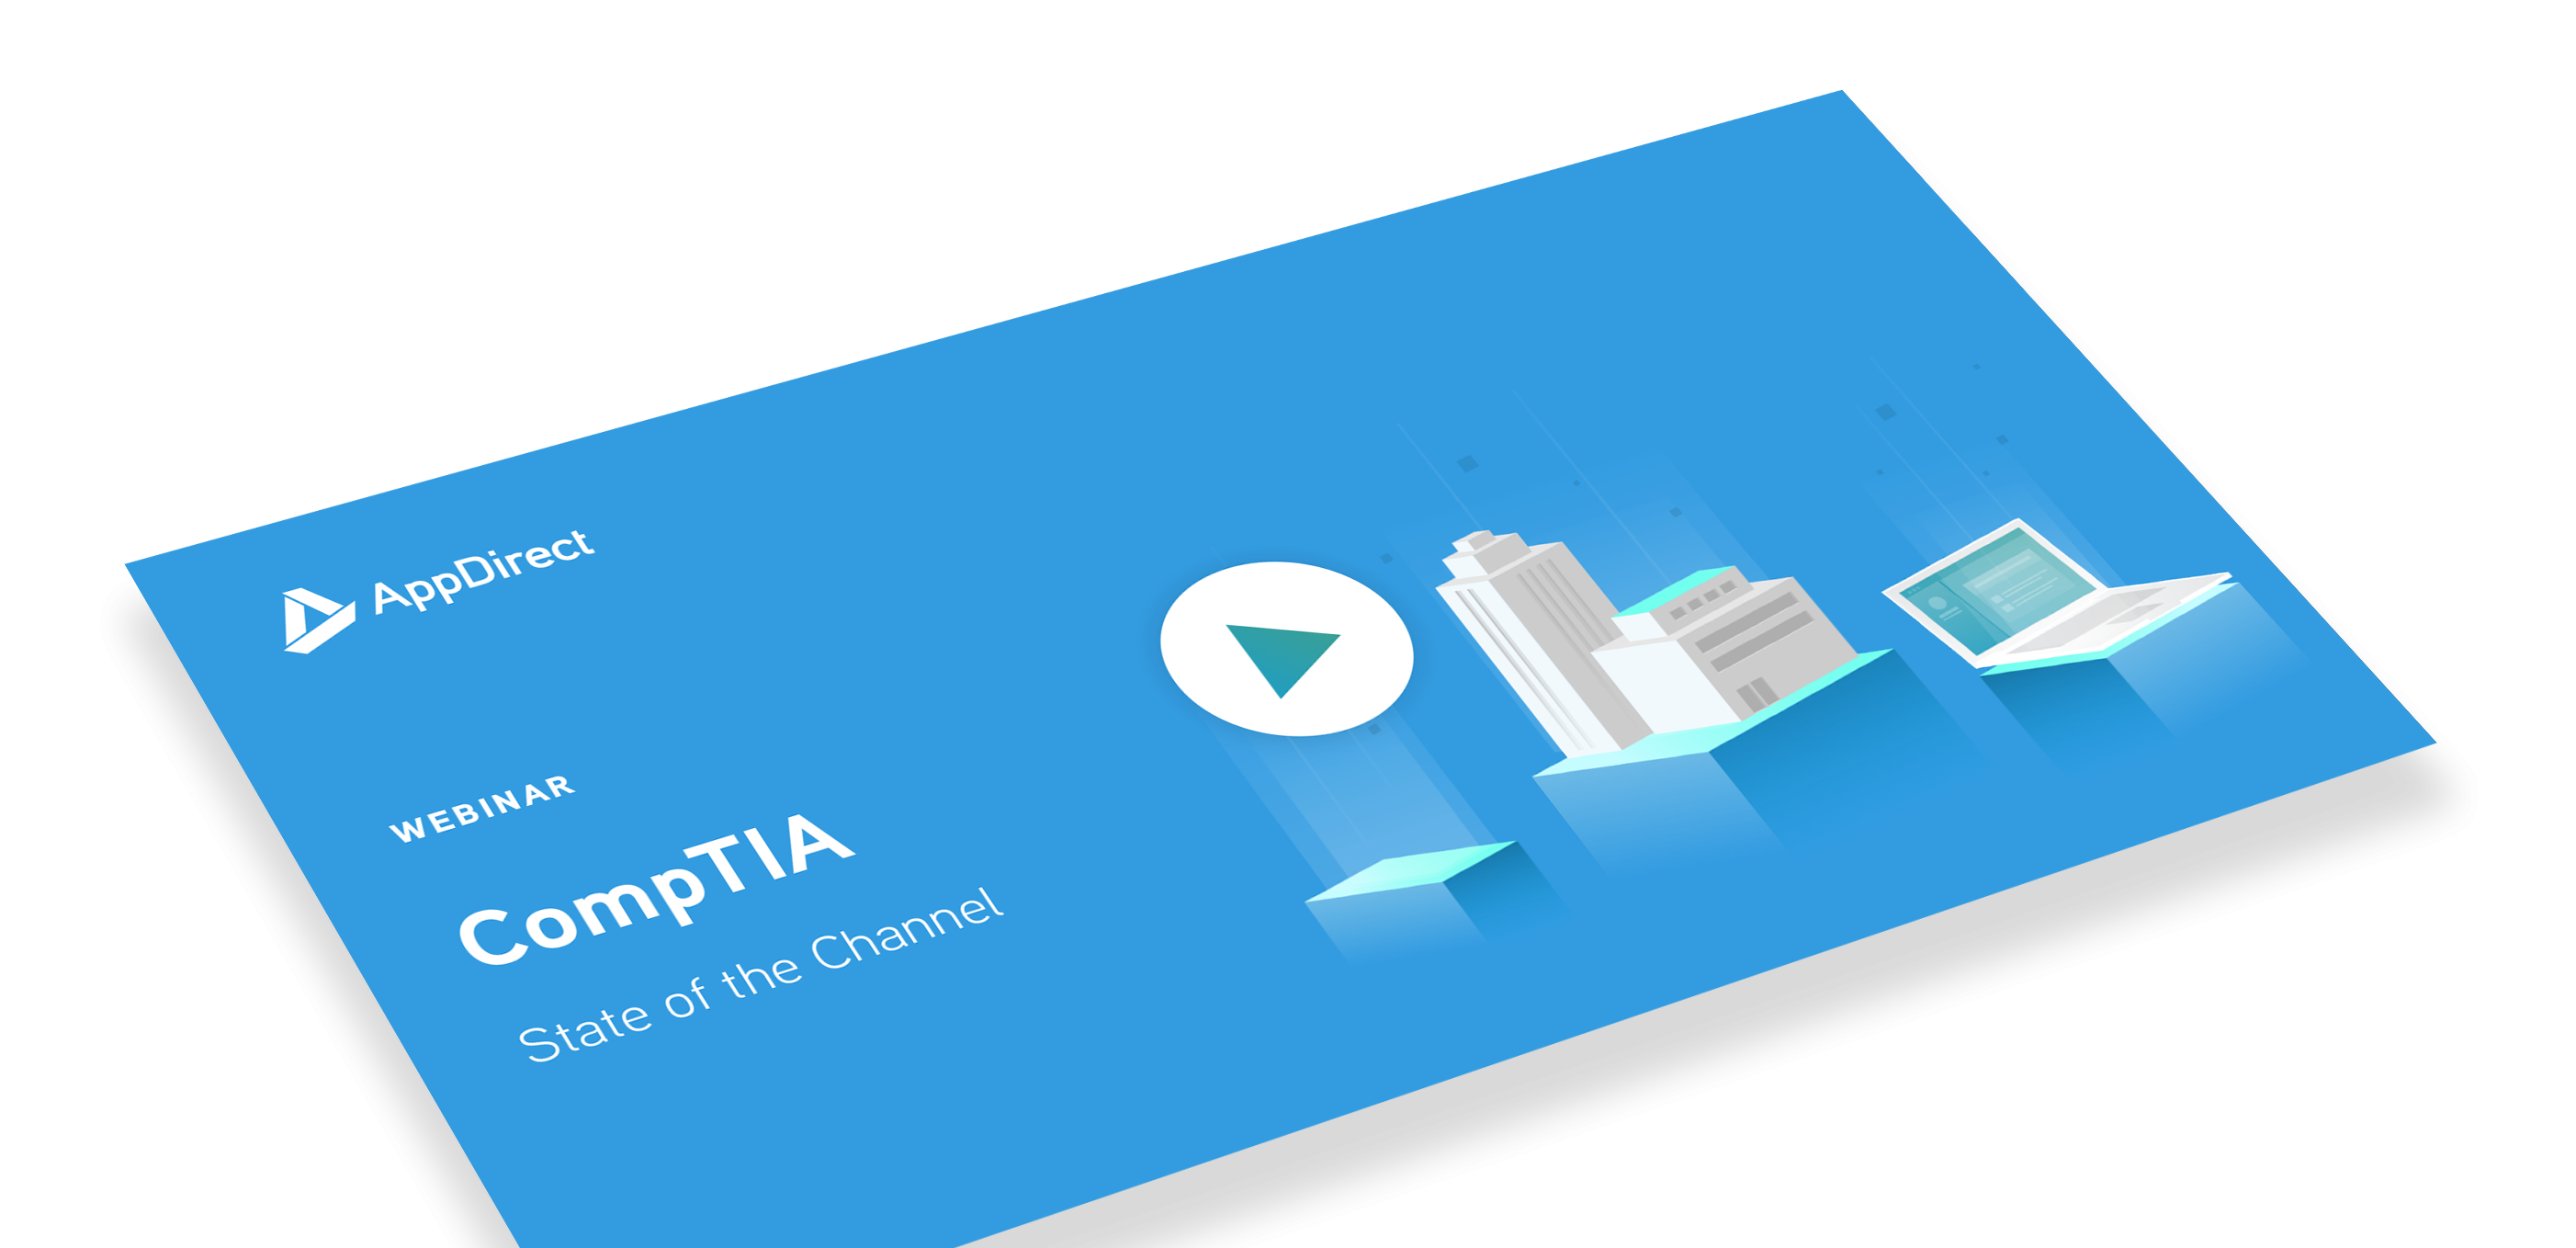 CompTIA - State of the Channel 2018